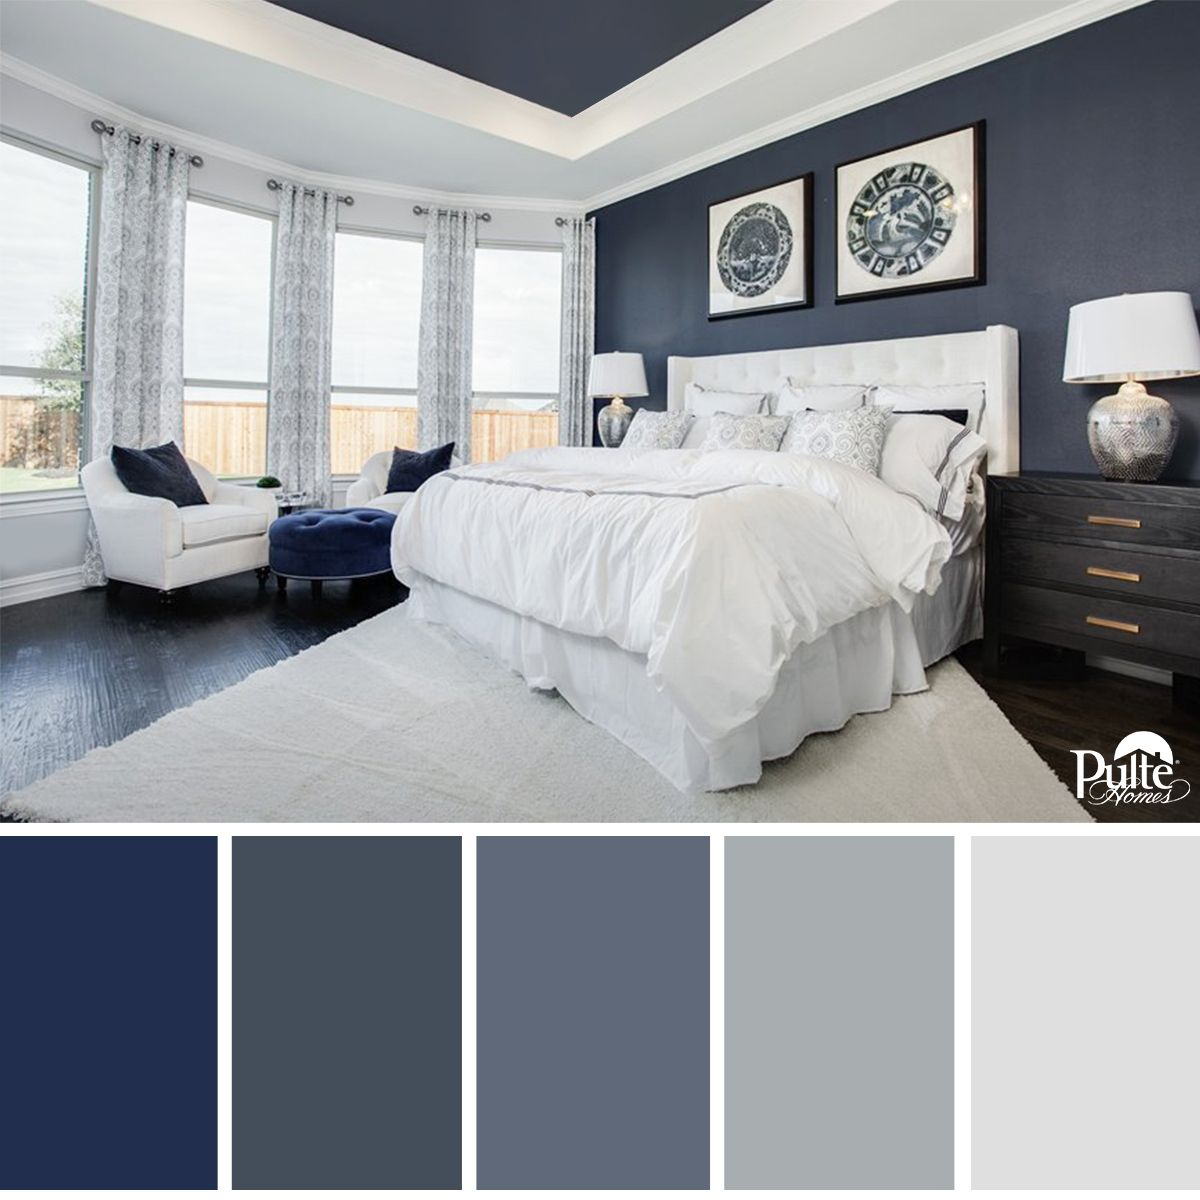 Ordinaire This Bedroom Design Has The Right Idea. The Rich Blue Color Palette And  Decor Create